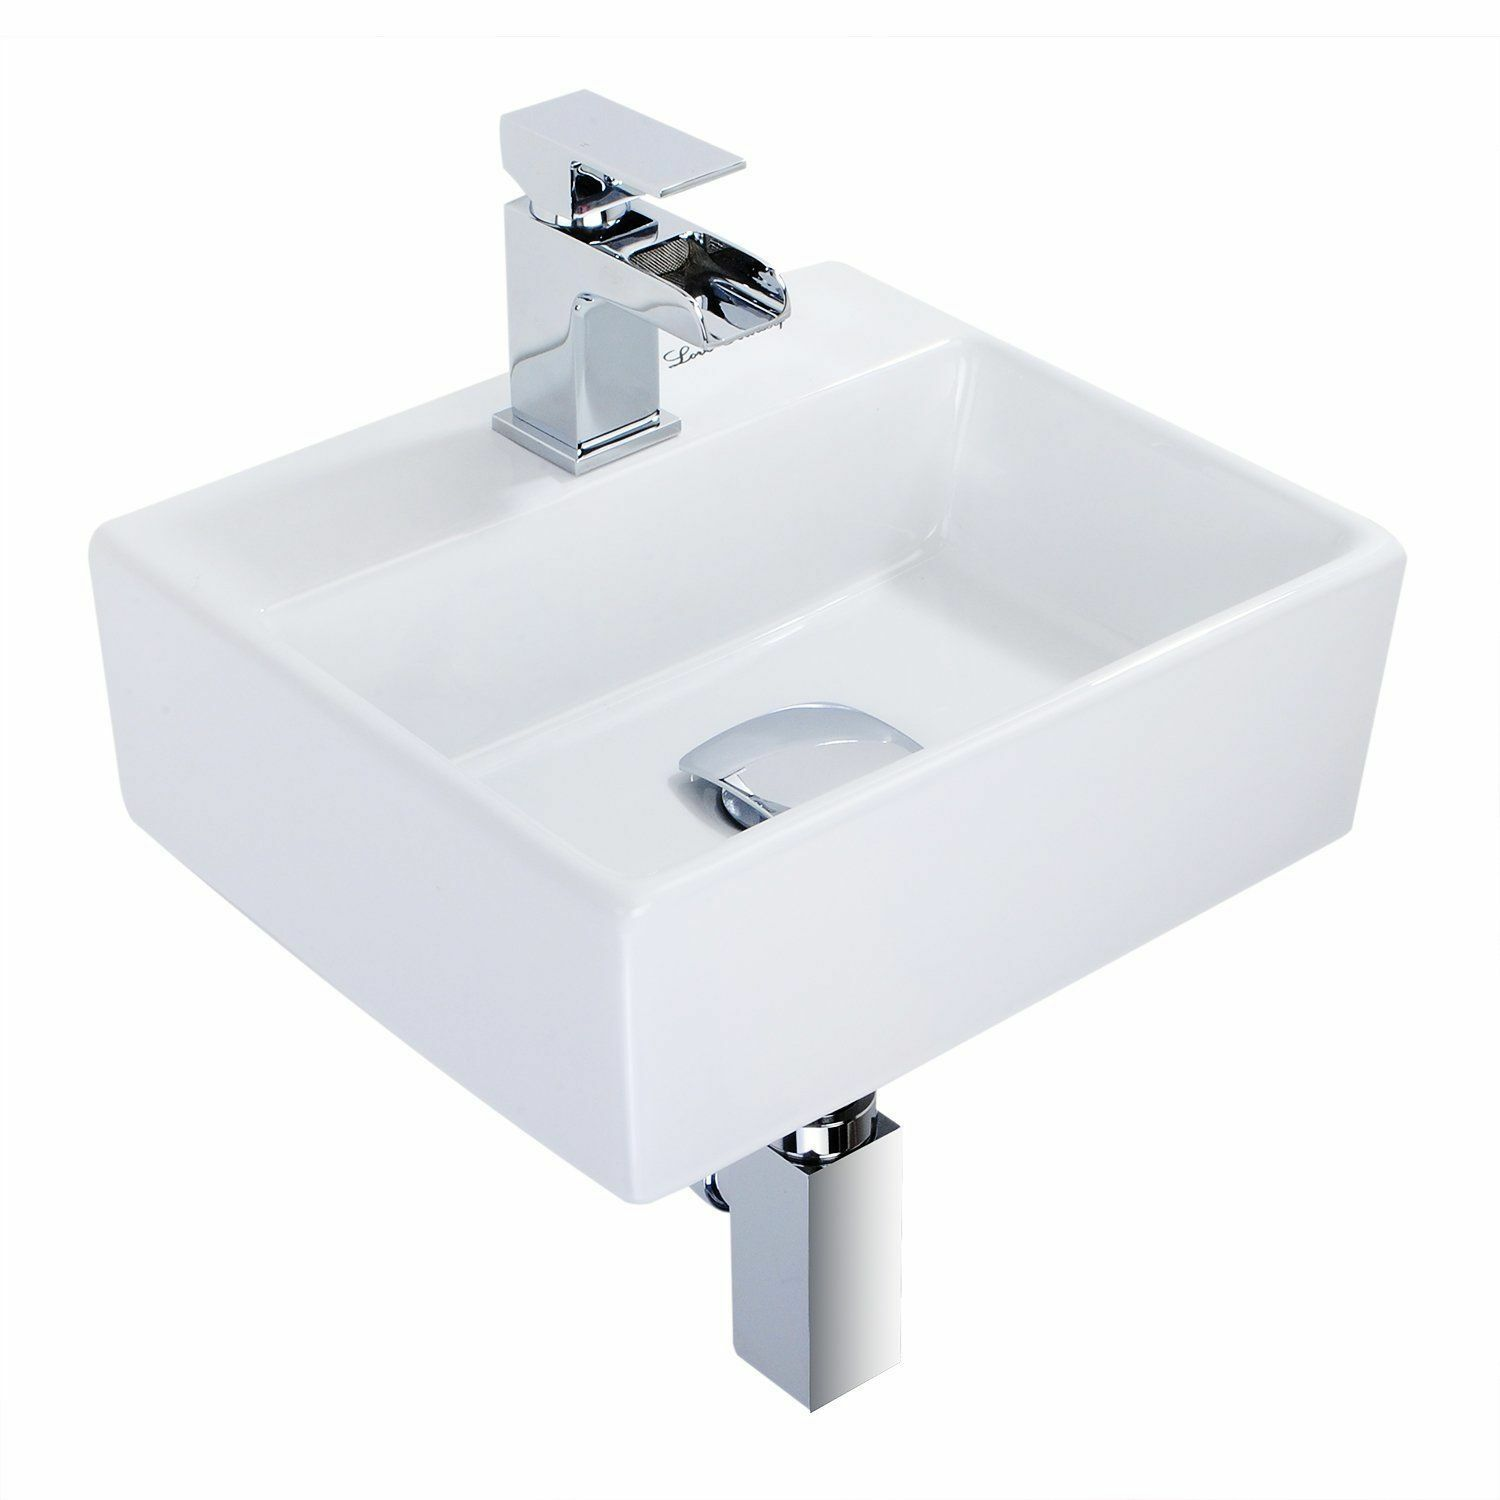 Modern Square Ceramic Small Compact Cloakroom Basin Wall Hung Bathroom Sink Picclick Uk